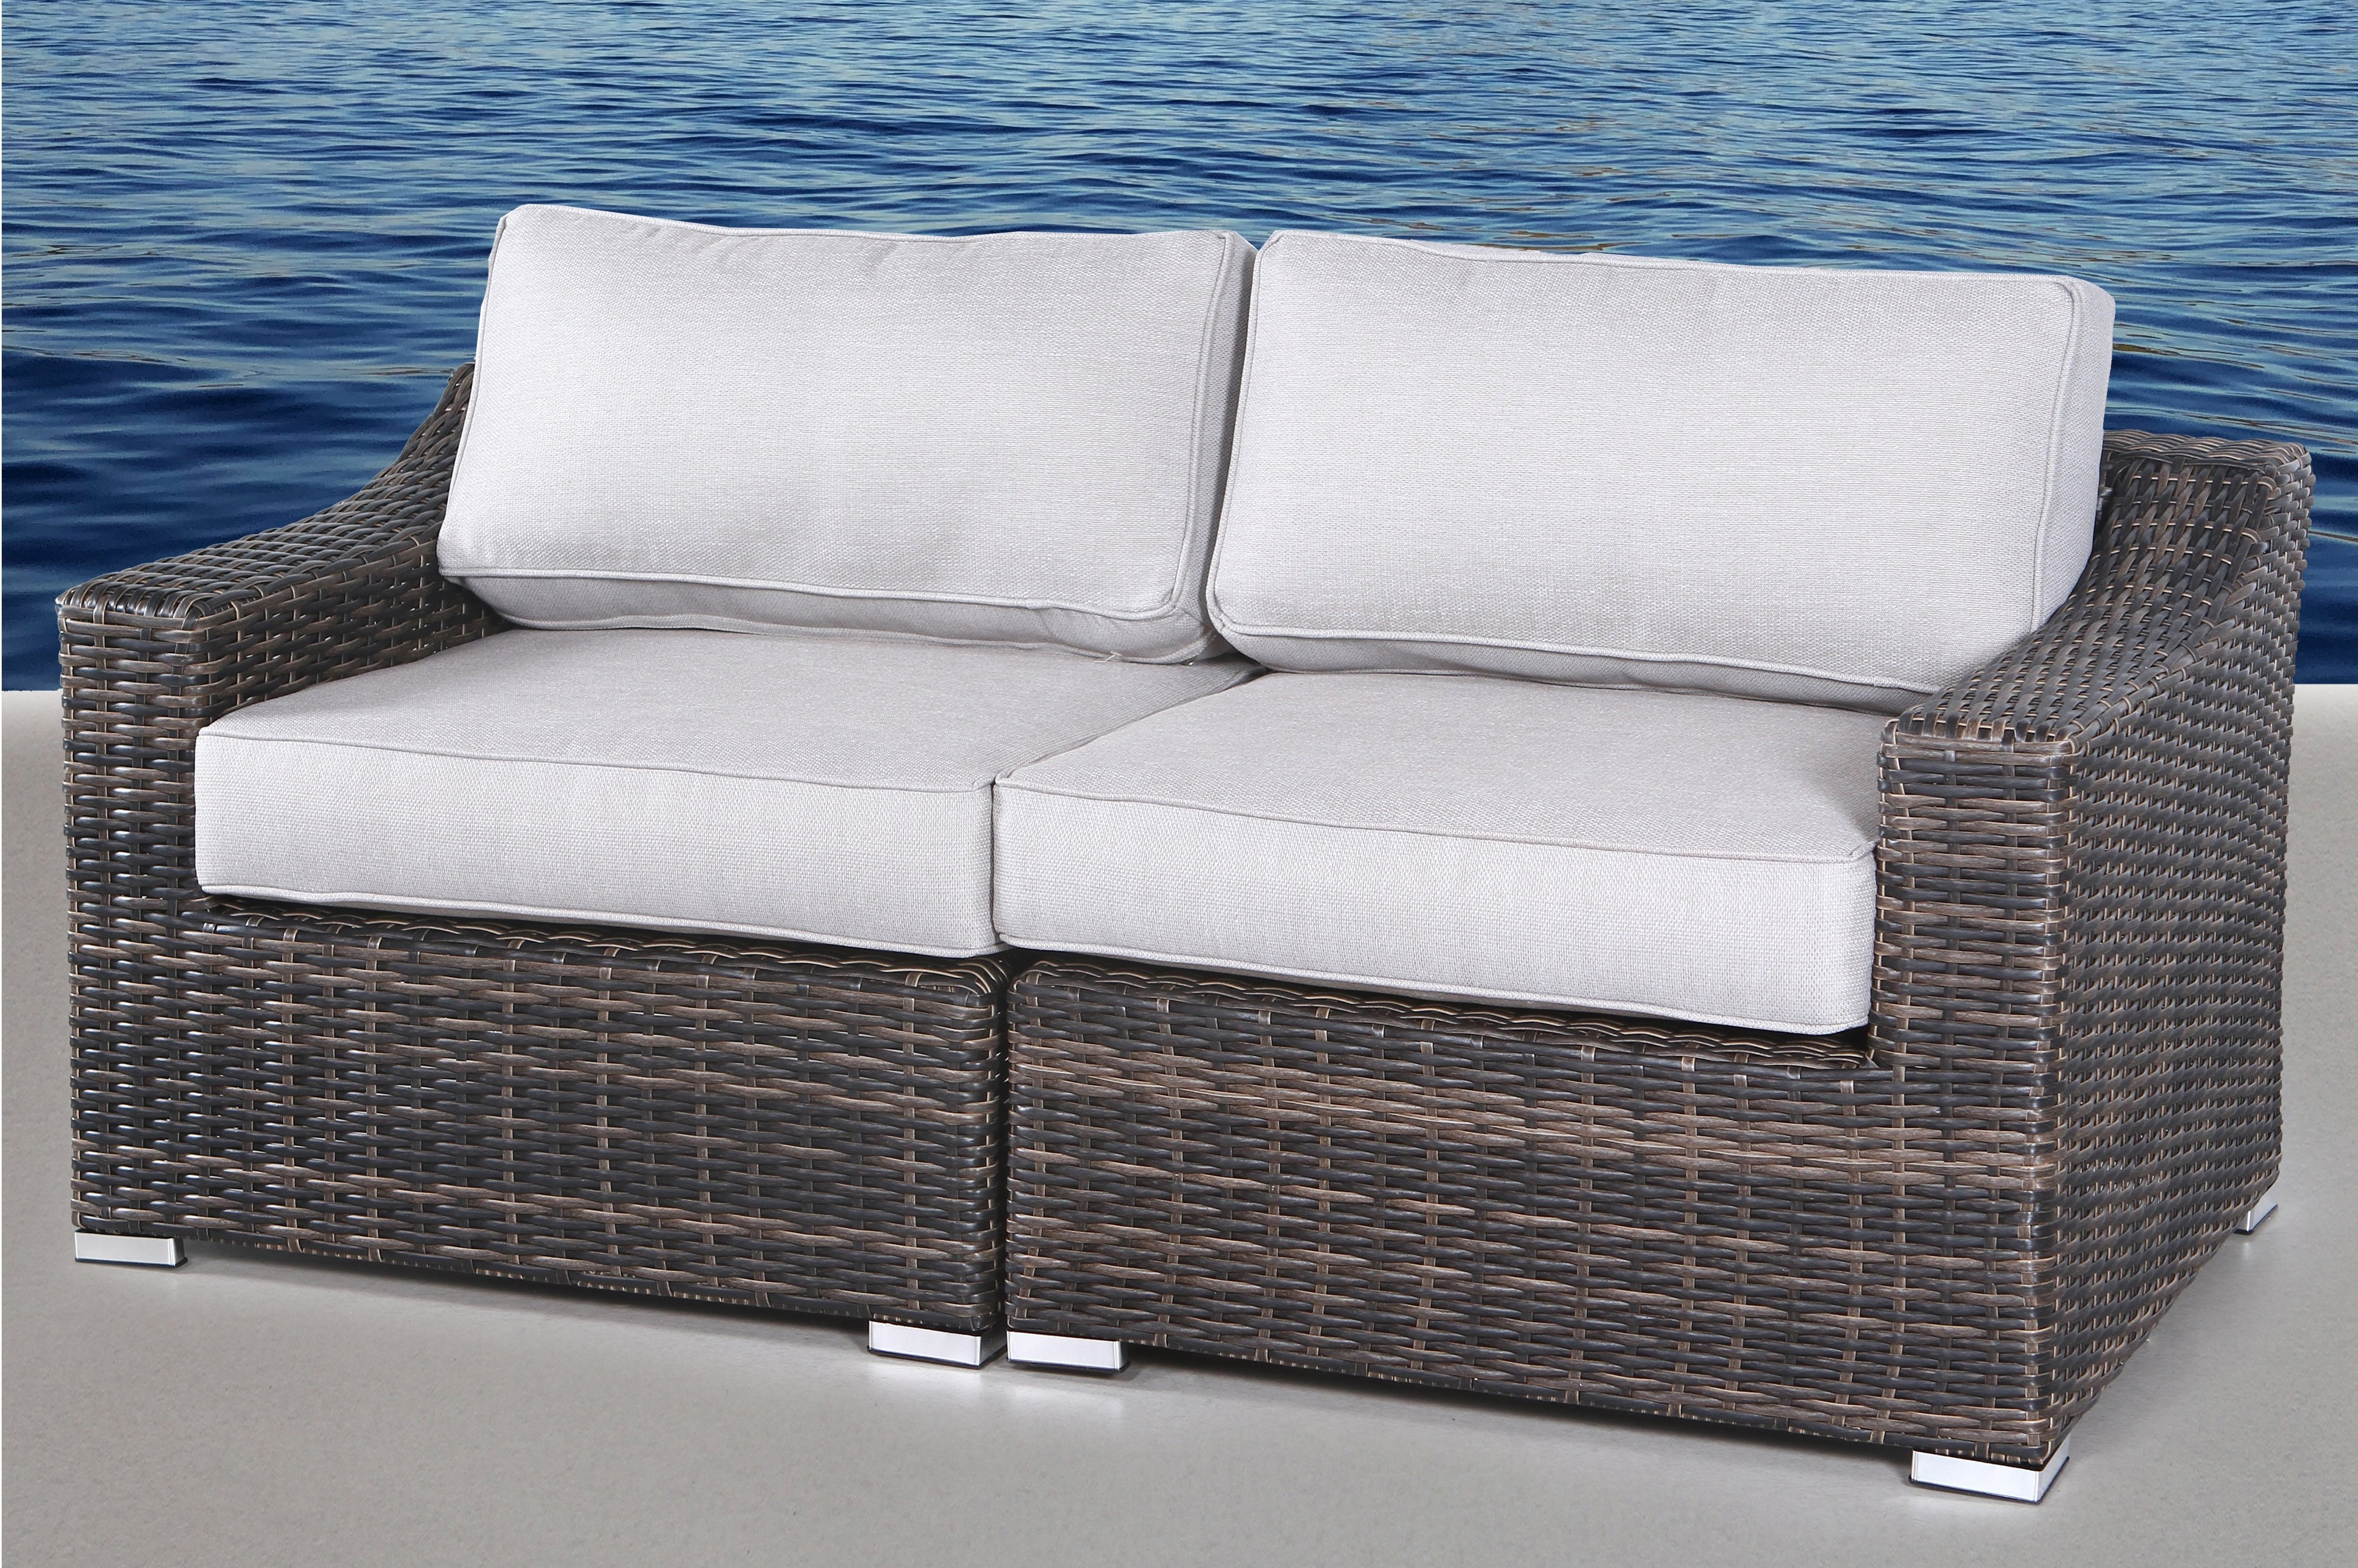 Huddleson Loveseat With Cushion With Regard To Widely Used Loggins Loveseats With Cushions (View 6 of 20)